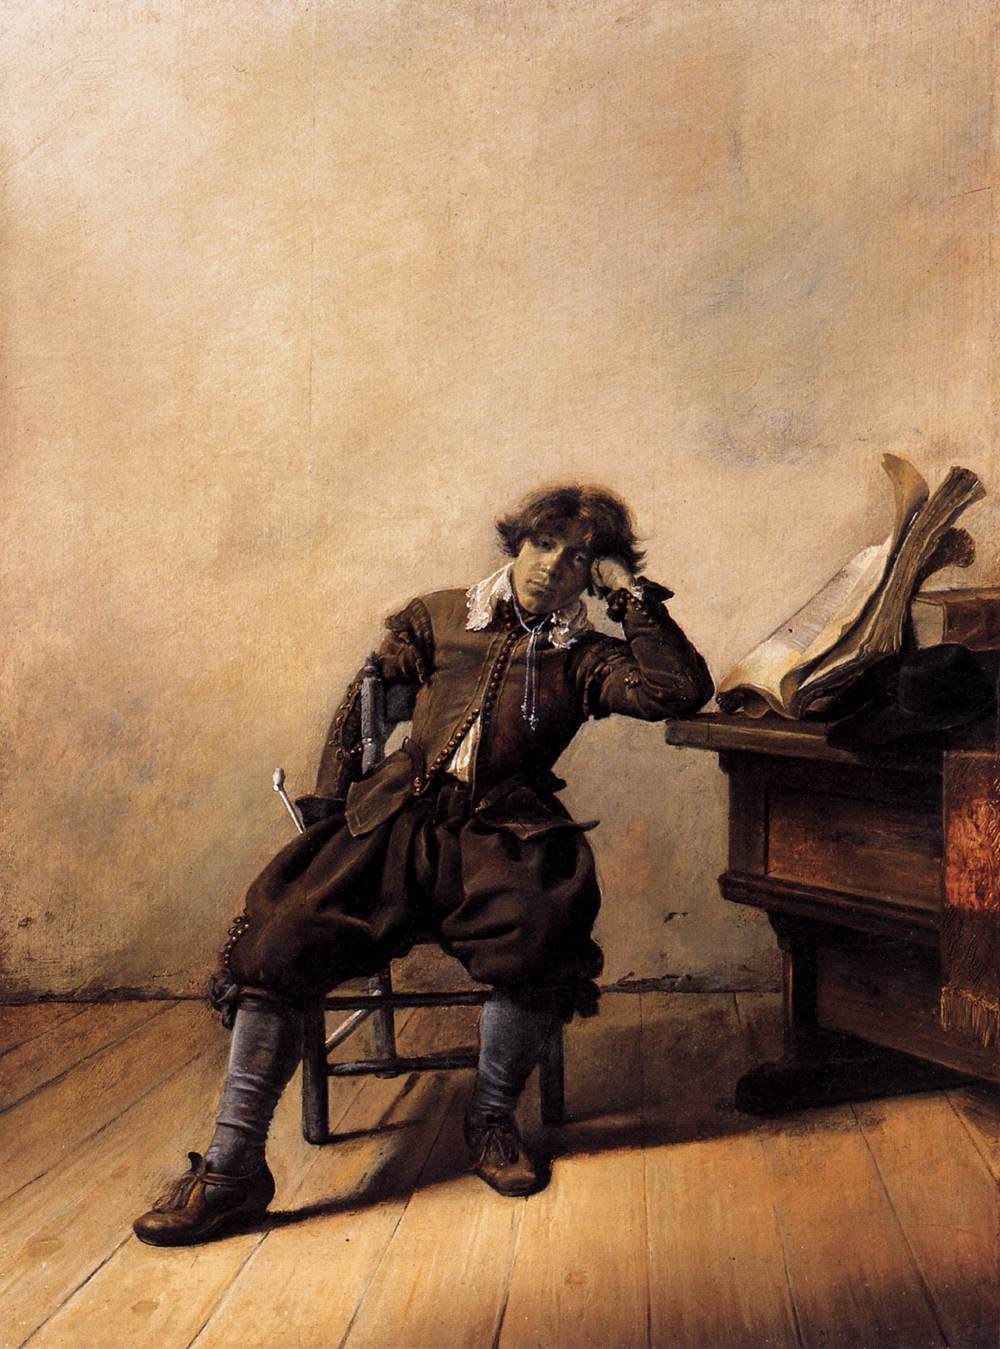 melancholic hamlet essay Unlike most editing & proofreading services, we edit for everything: grammar, spelling, punctuation, idea flow, sentence structure, & more get started now.